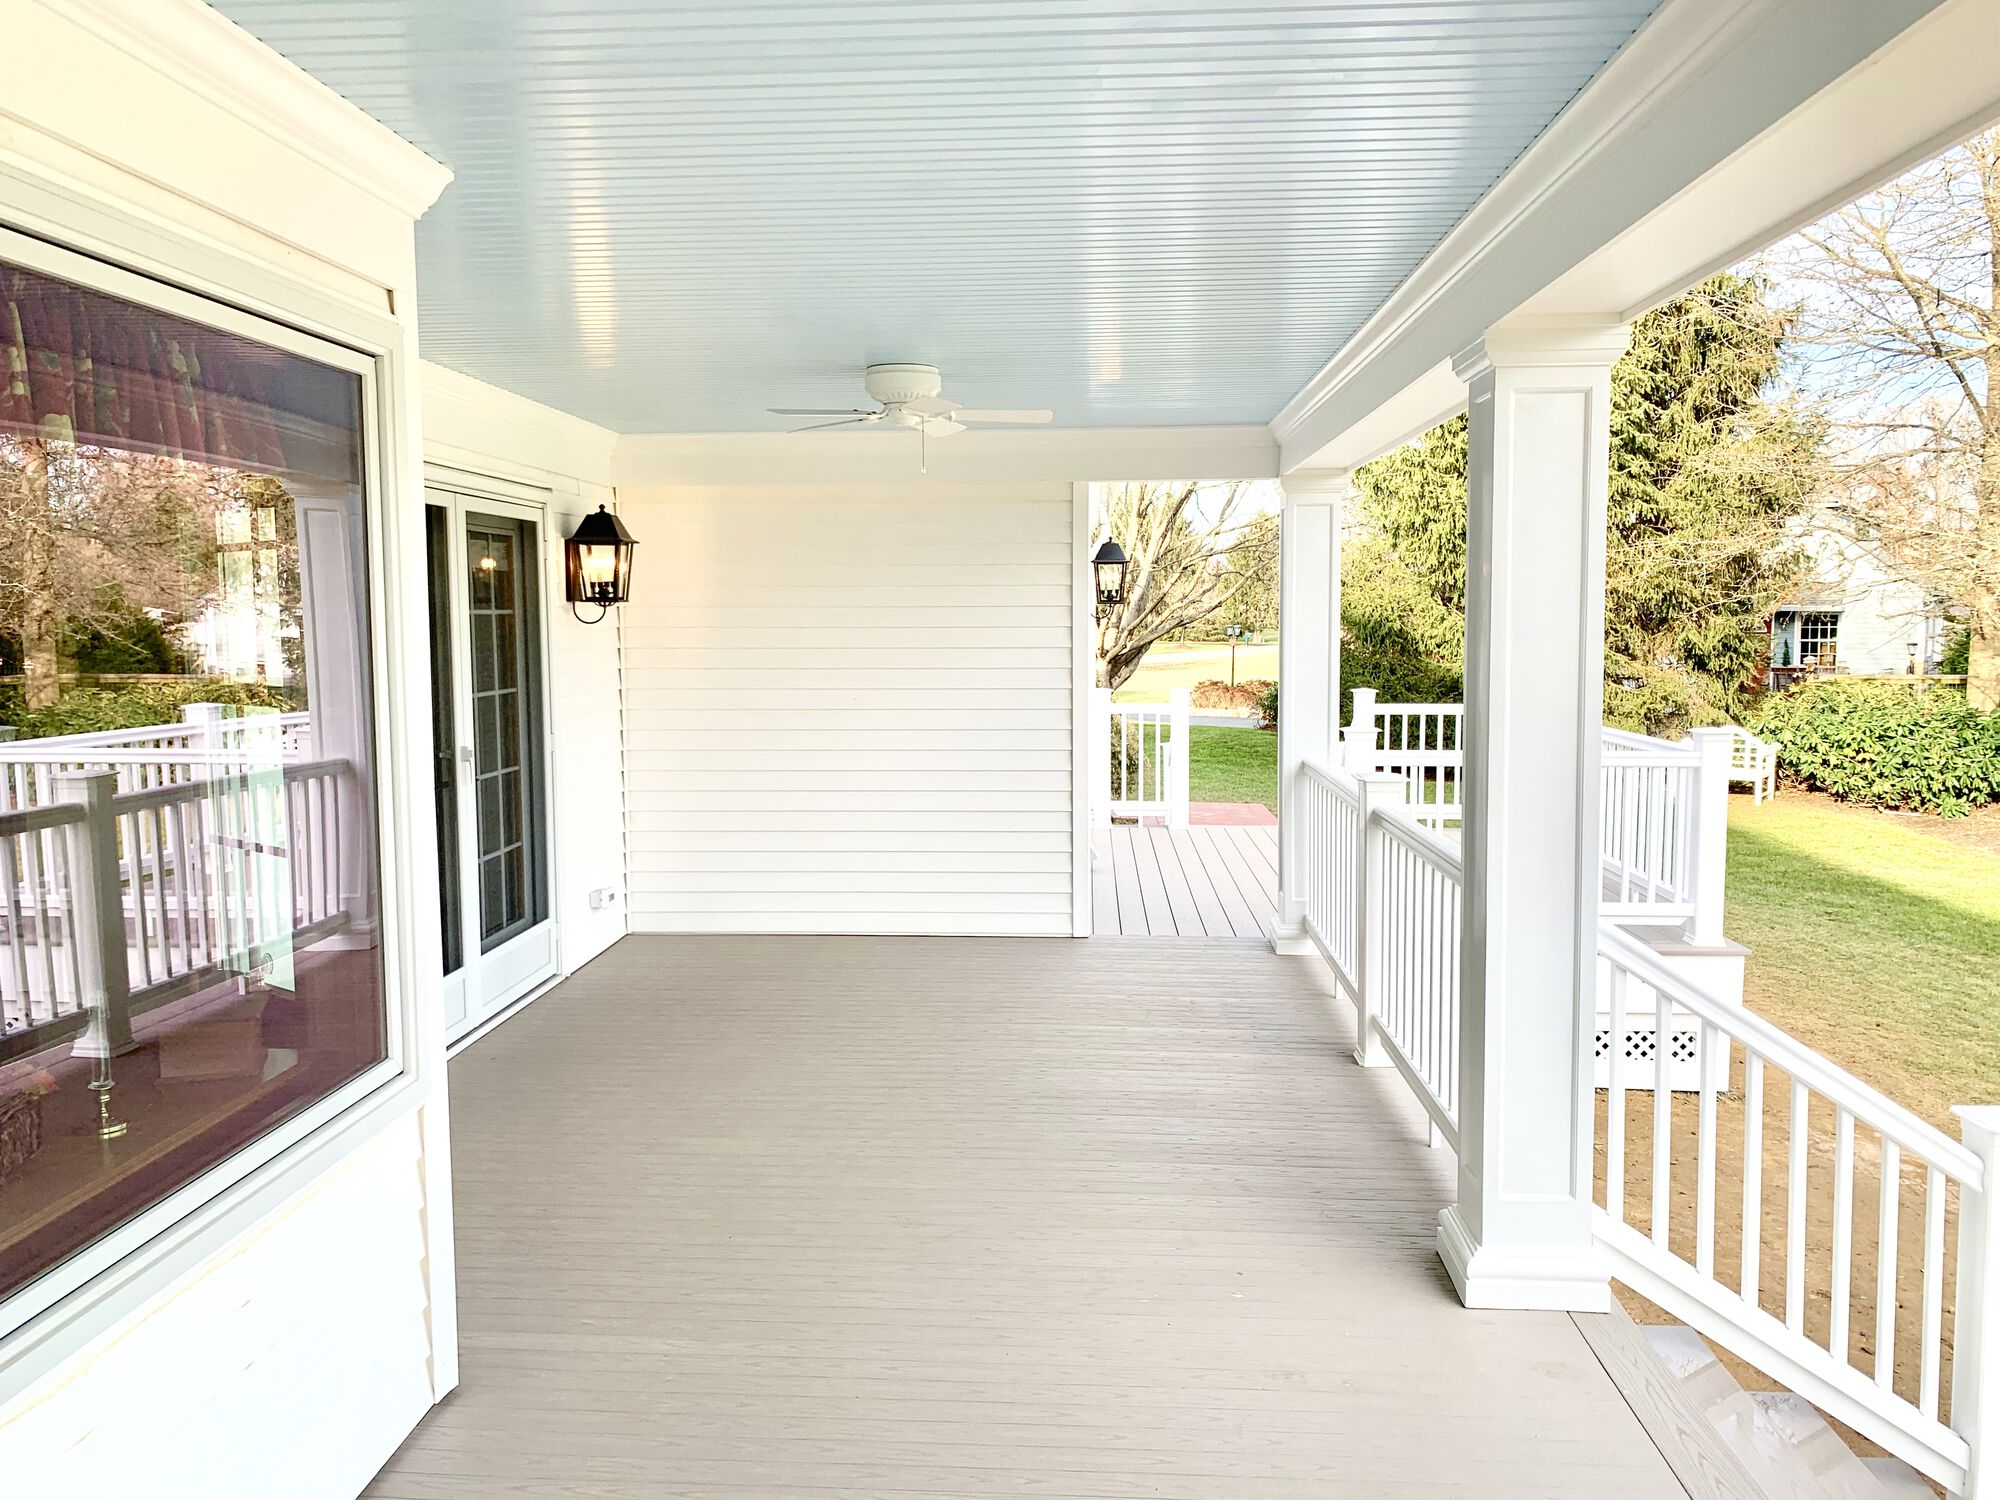 Covered Porch _ Open Deck with Azek Composite Decking, Timbertech Radiance Rails in Washington, Warren County NJ